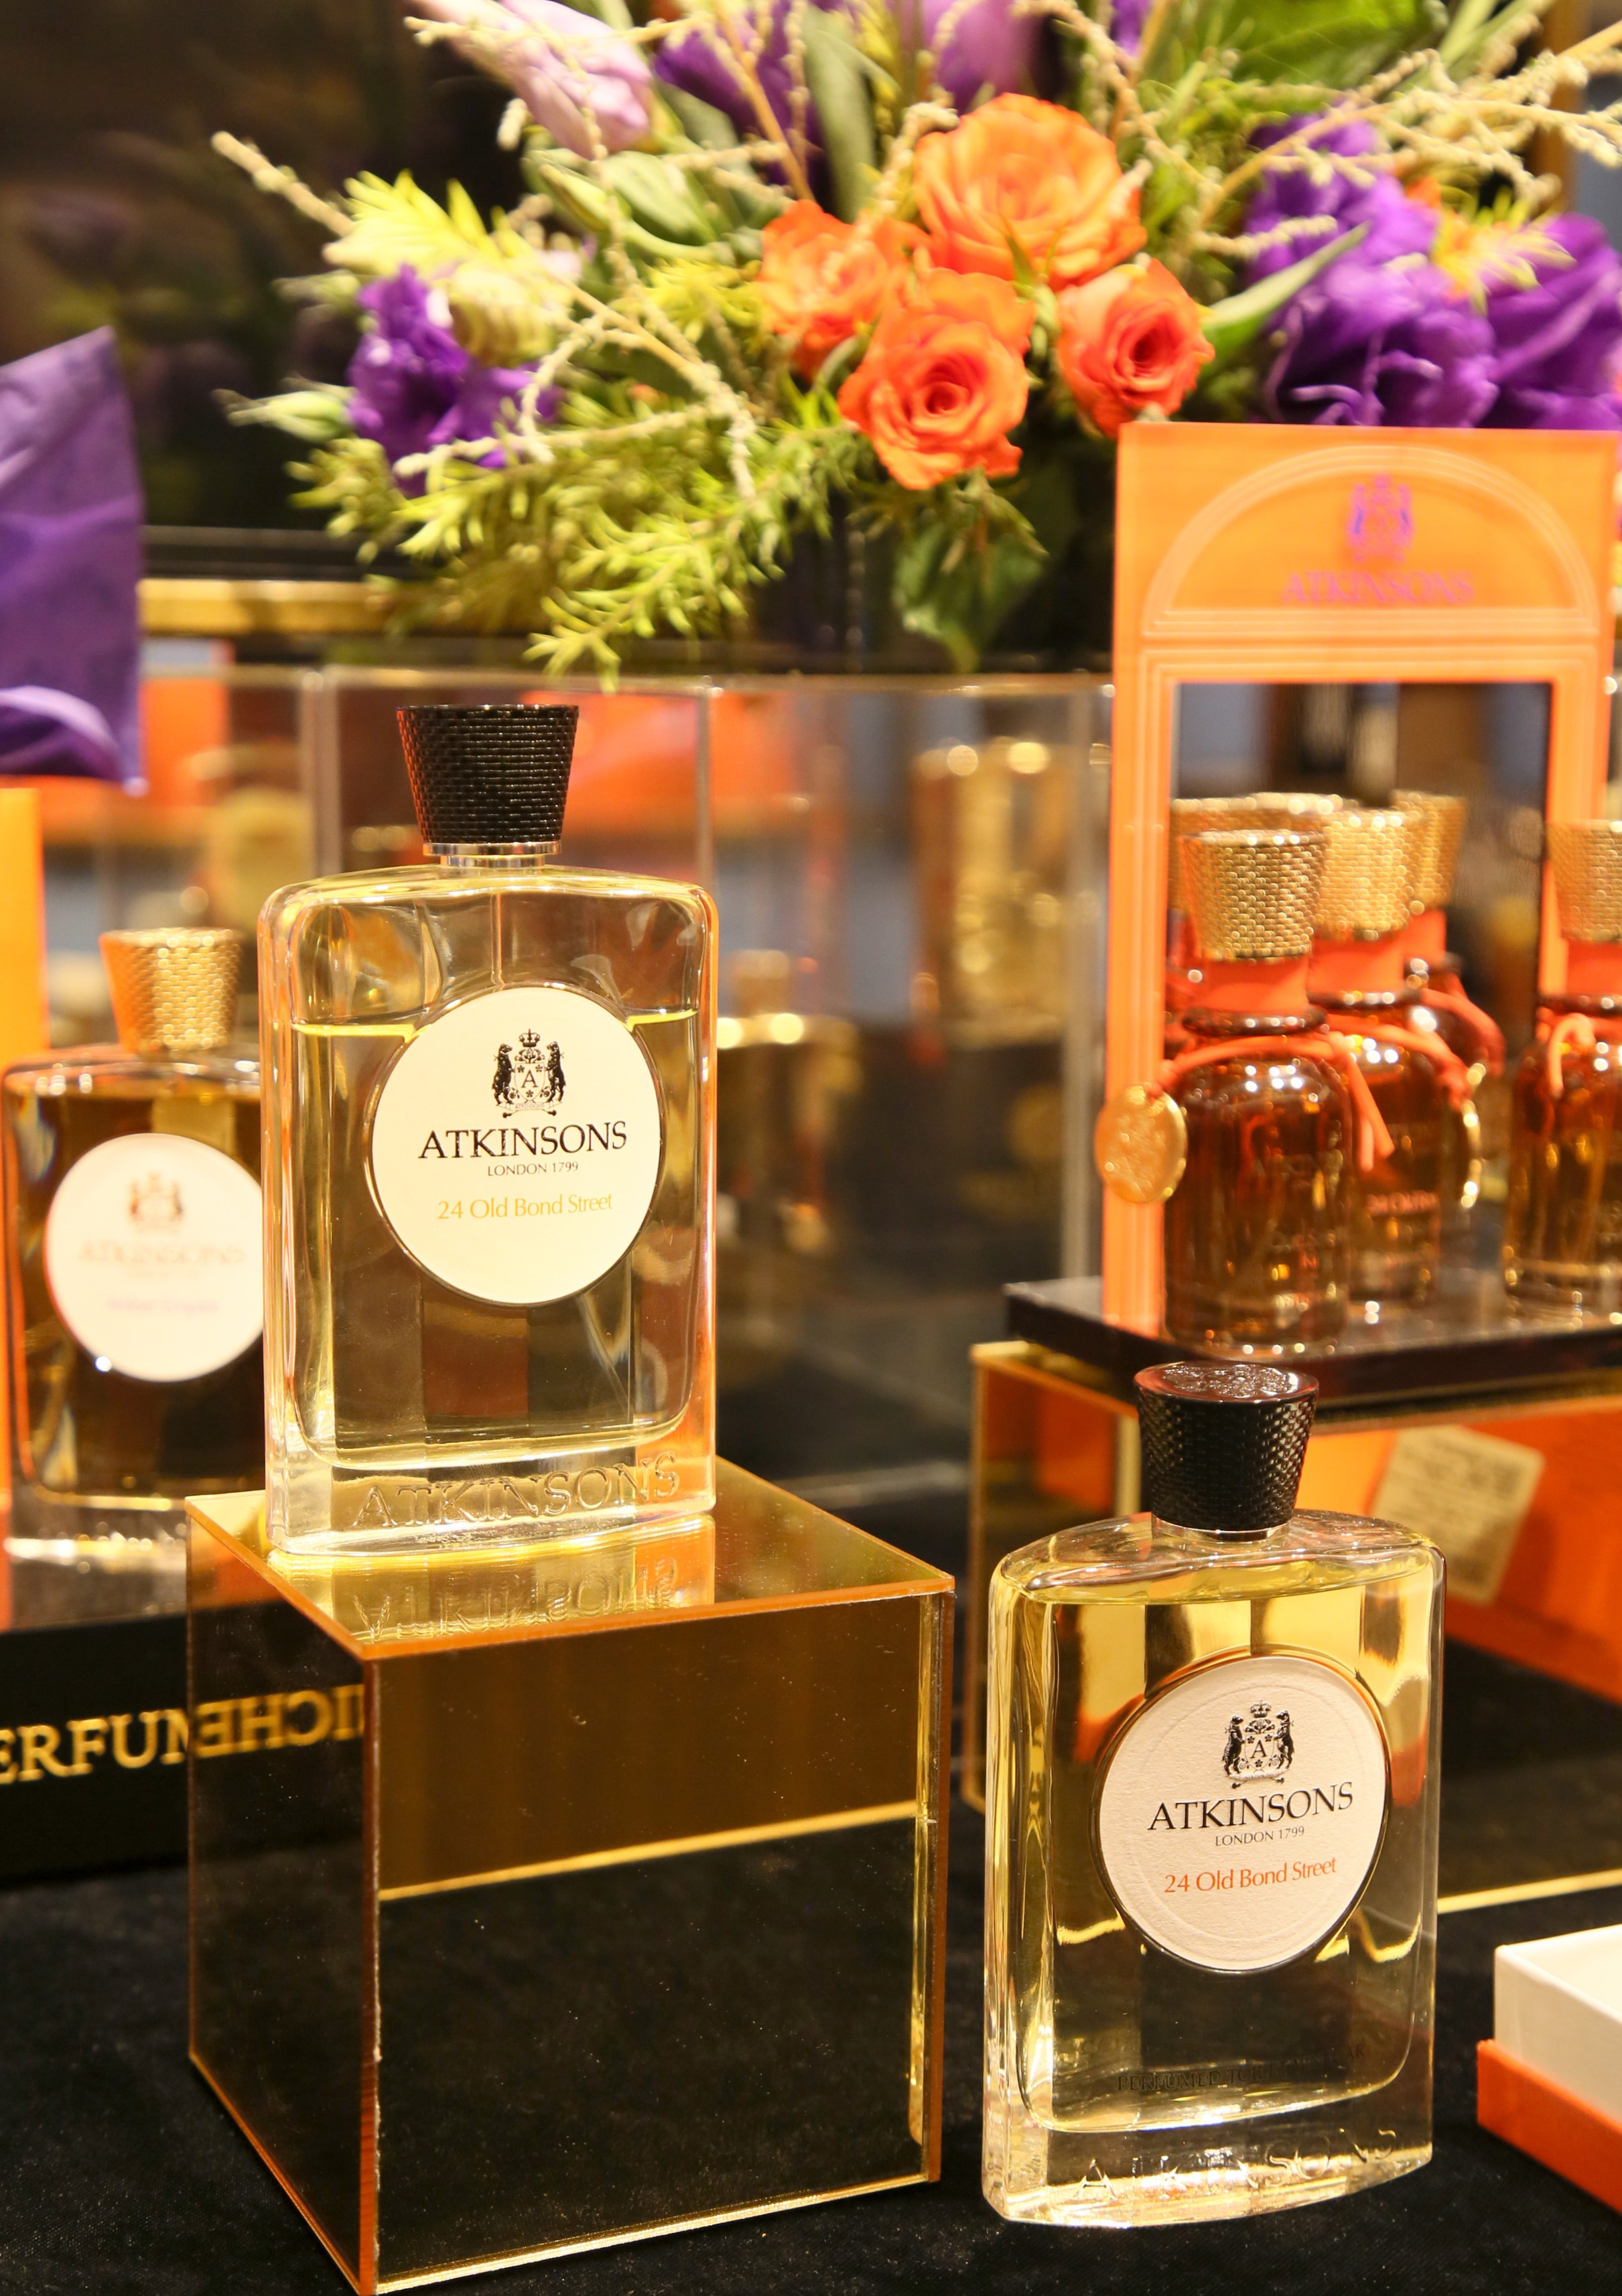 The Fragrance Of Atkinsons Perfumes